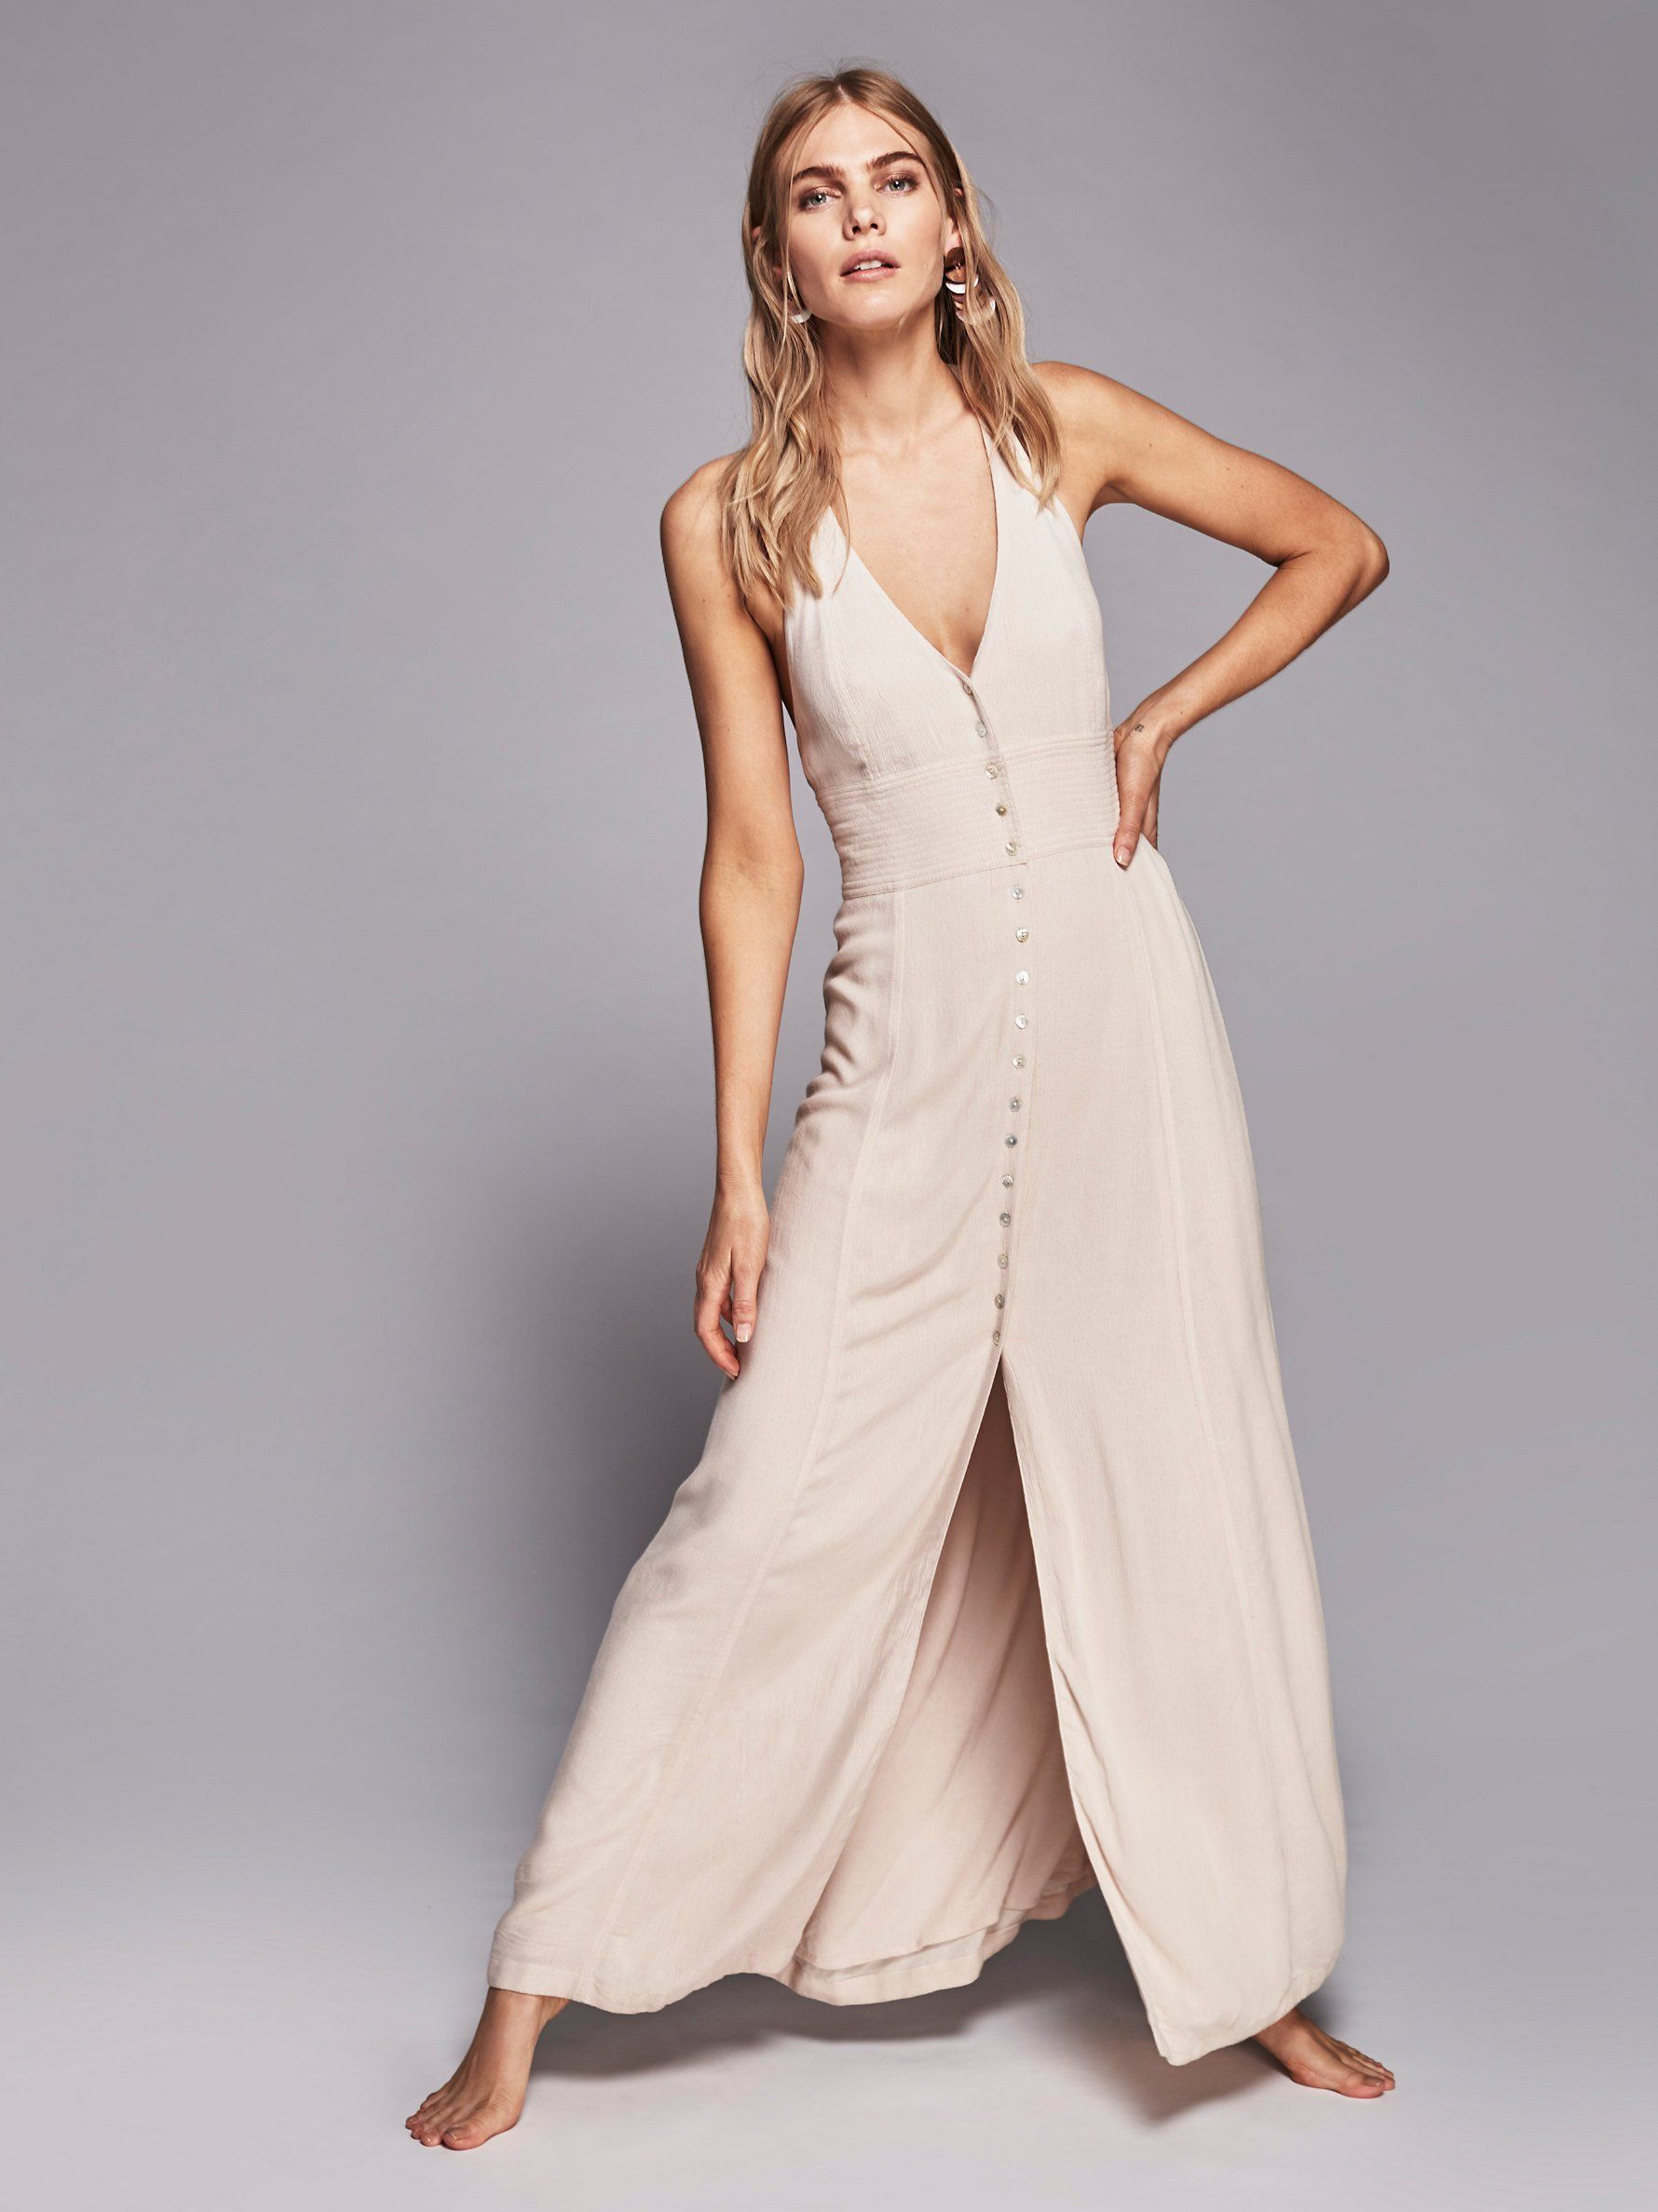 Vneck backless sexy button closures in front with slit long dress